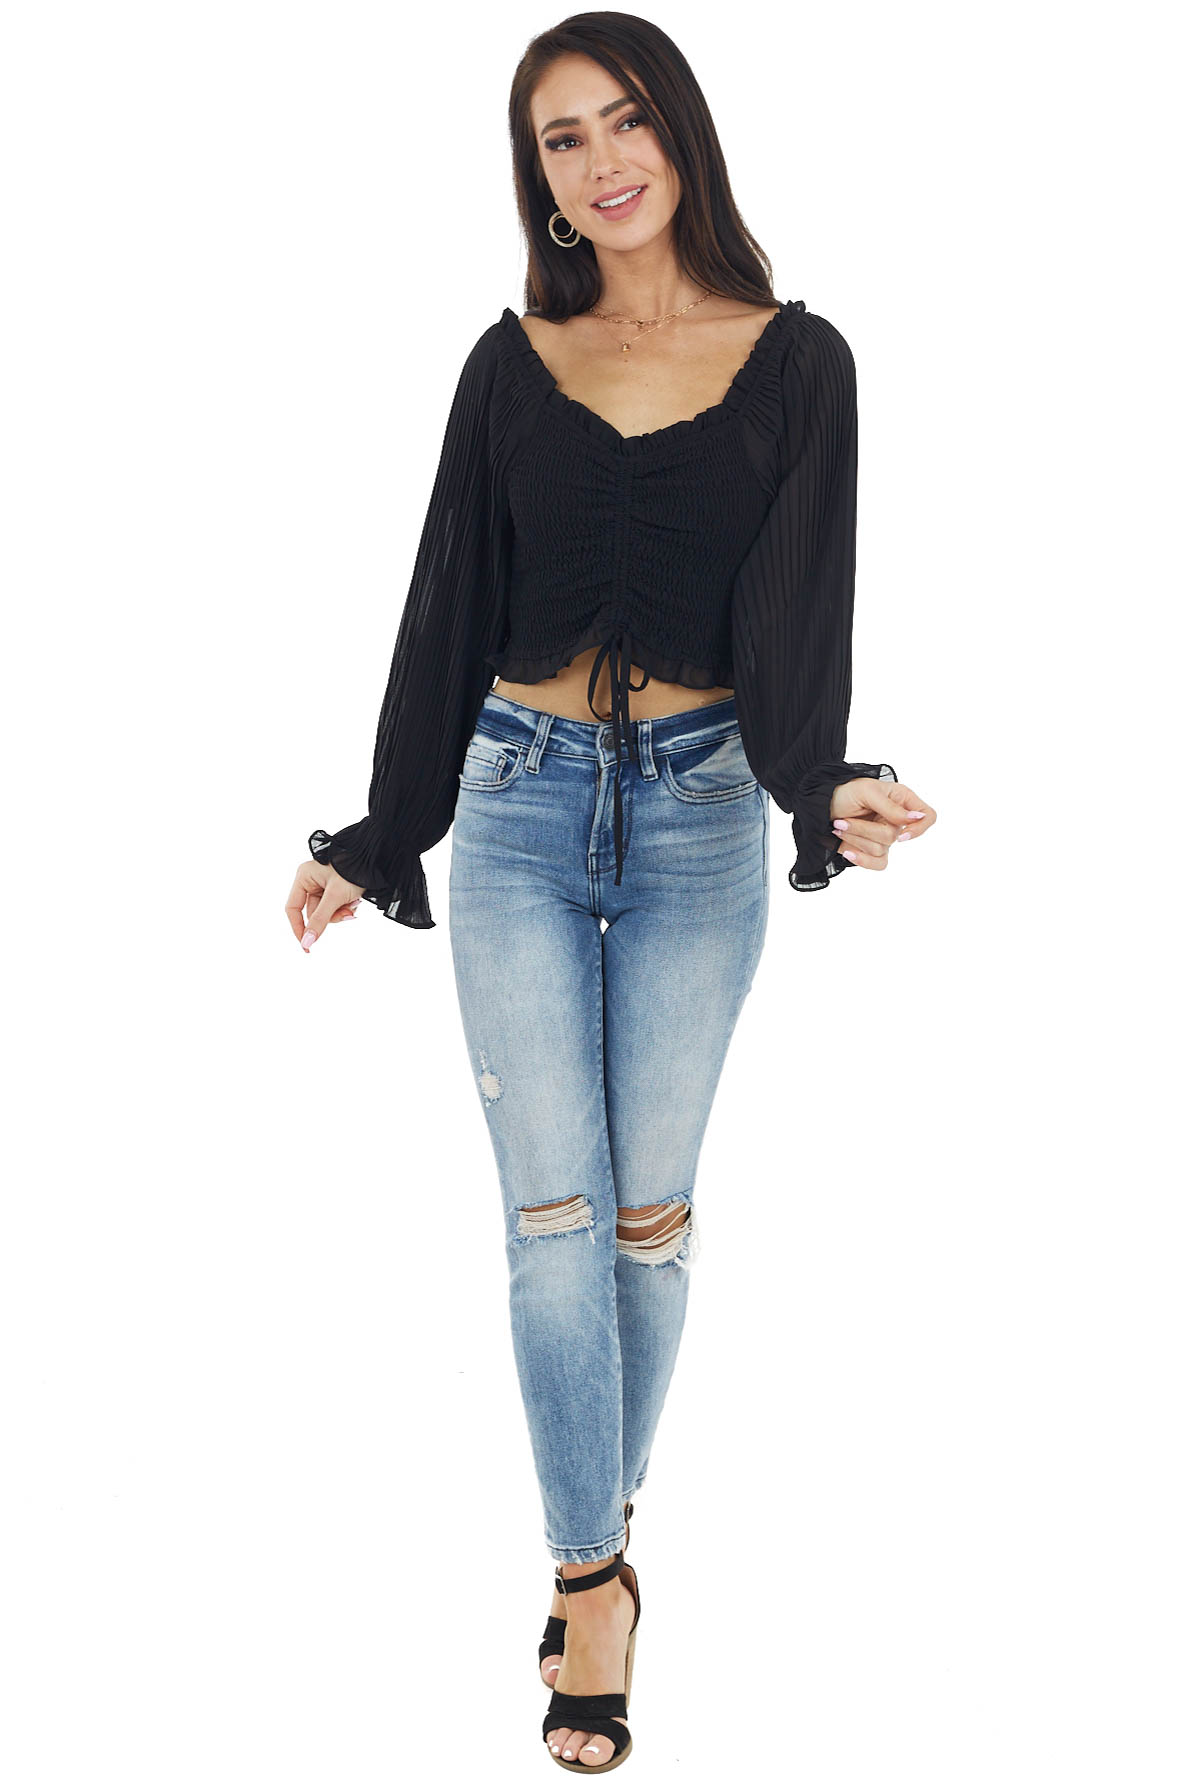 Black Smocked Crop Top with Long Sheer Bubble Sleeves